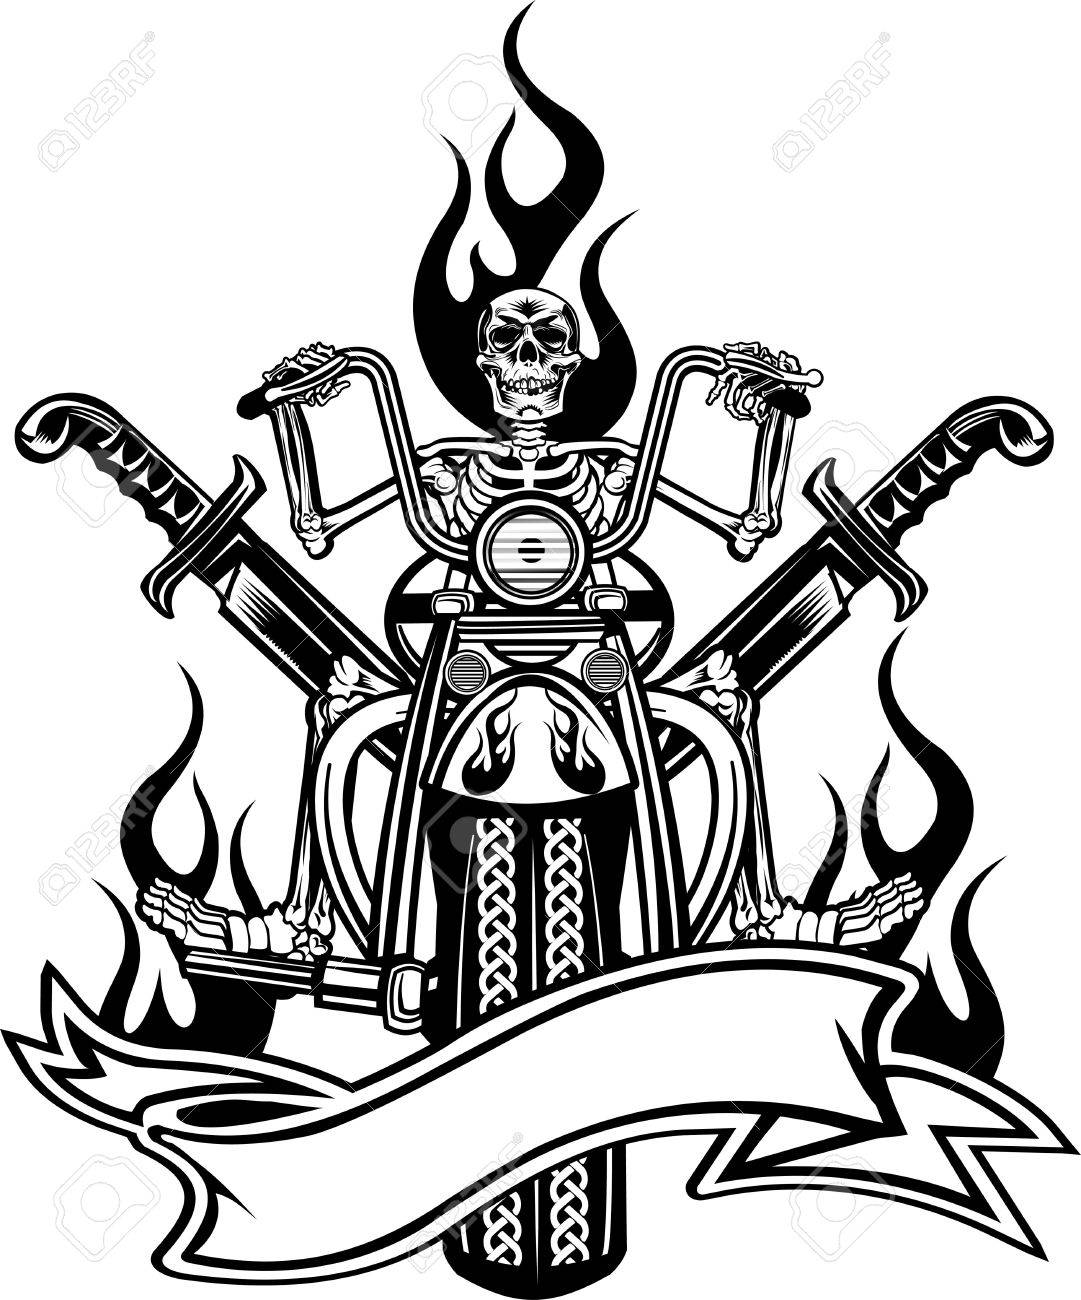 1081x1300 Ghost Rider Clipart Skeleton